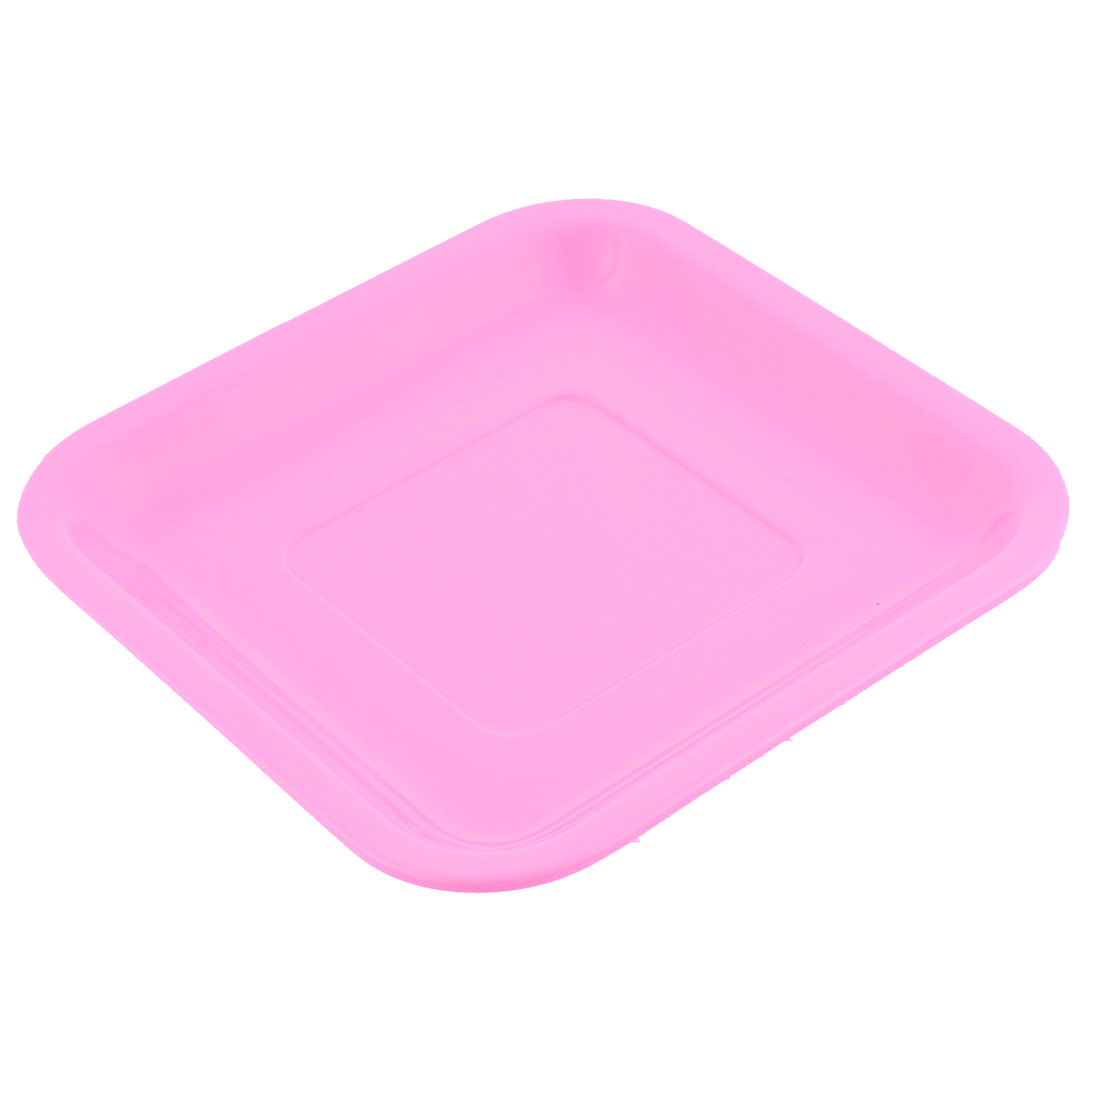 Restaurant Square Shaped Dinner Dessert Appetizer Plate Dish Tray Pink